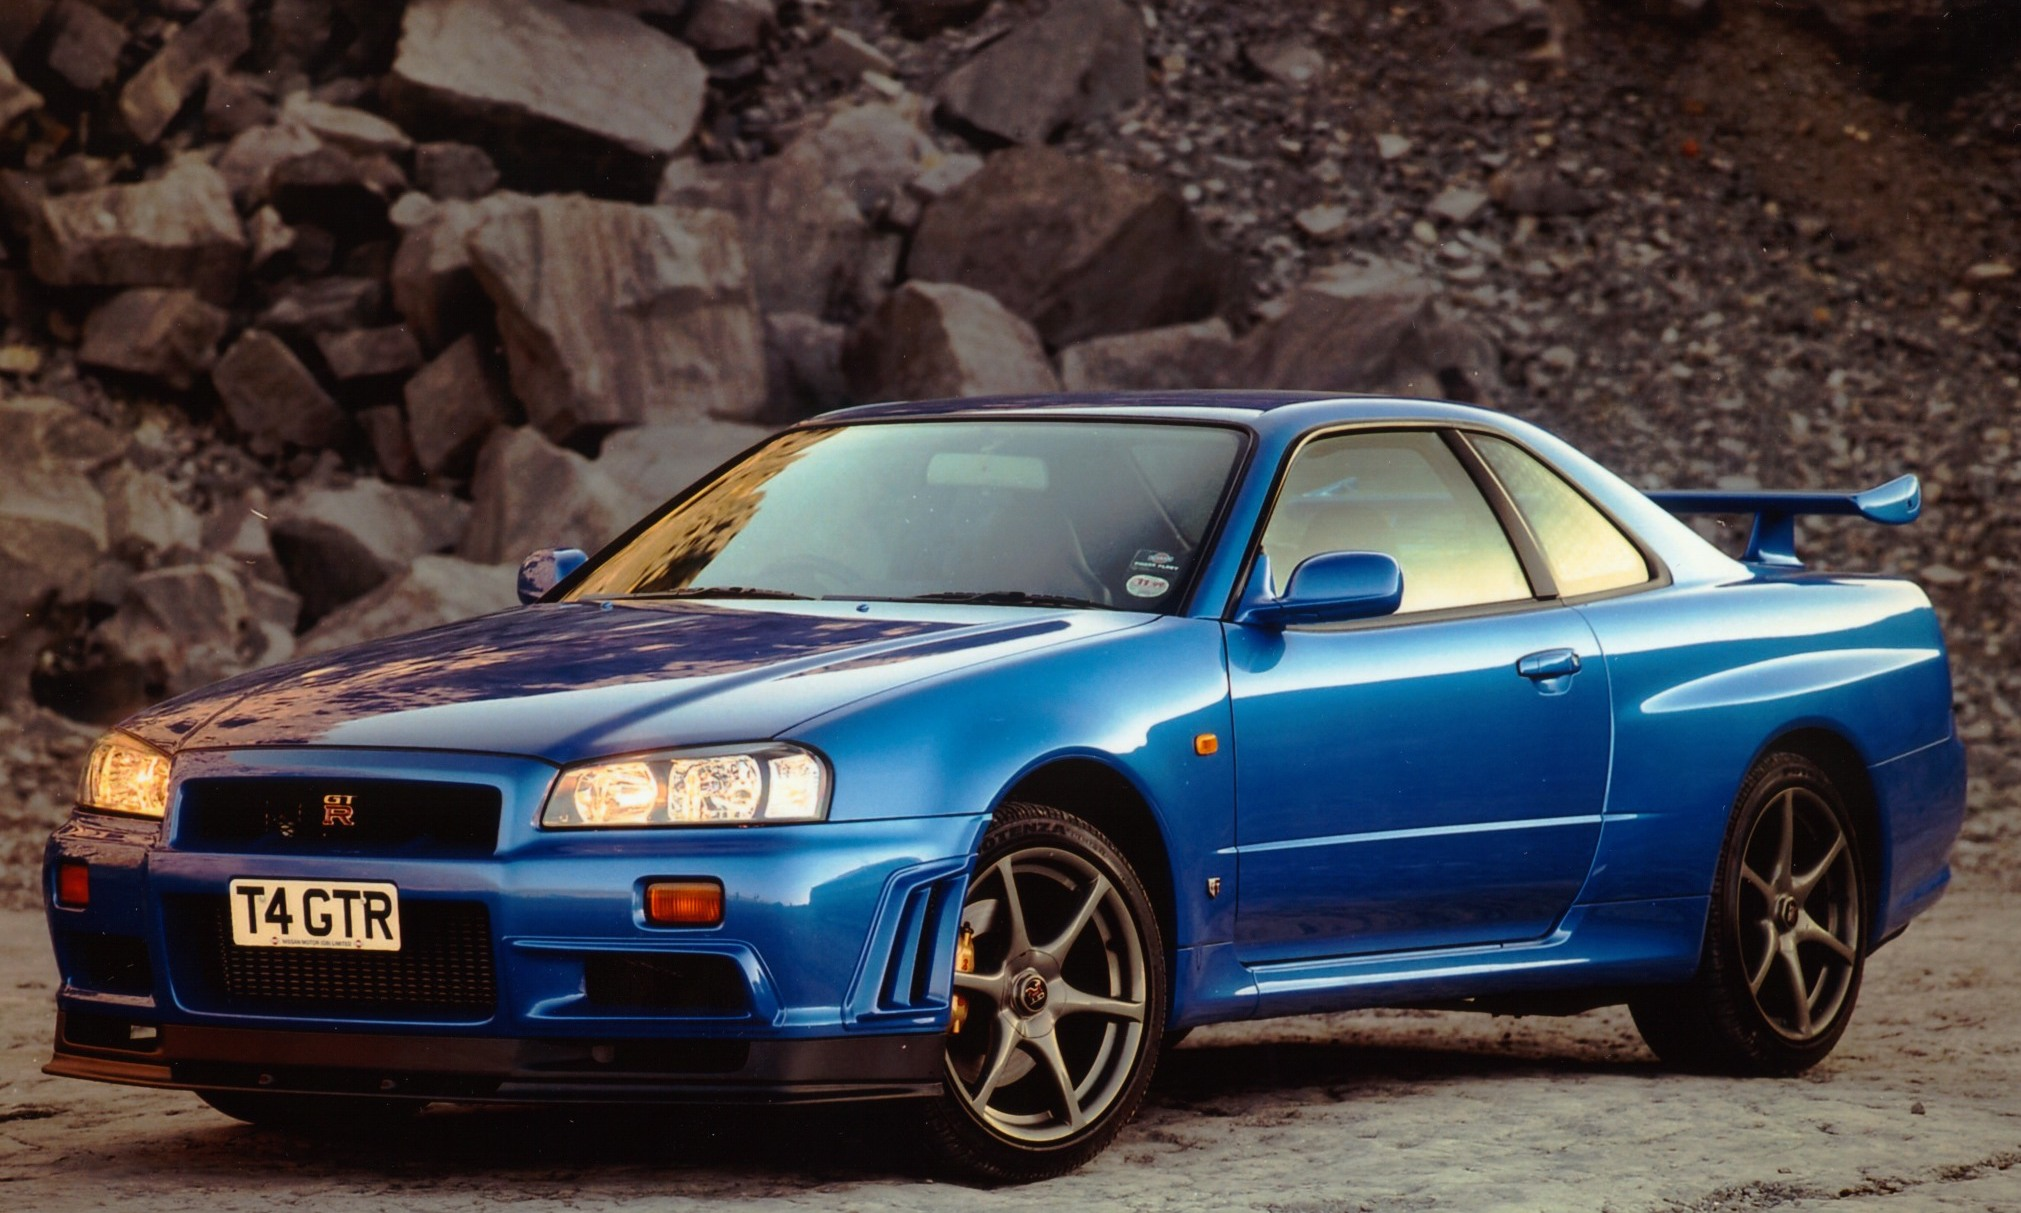 The GT-R remains a firm favourite in motoring circles